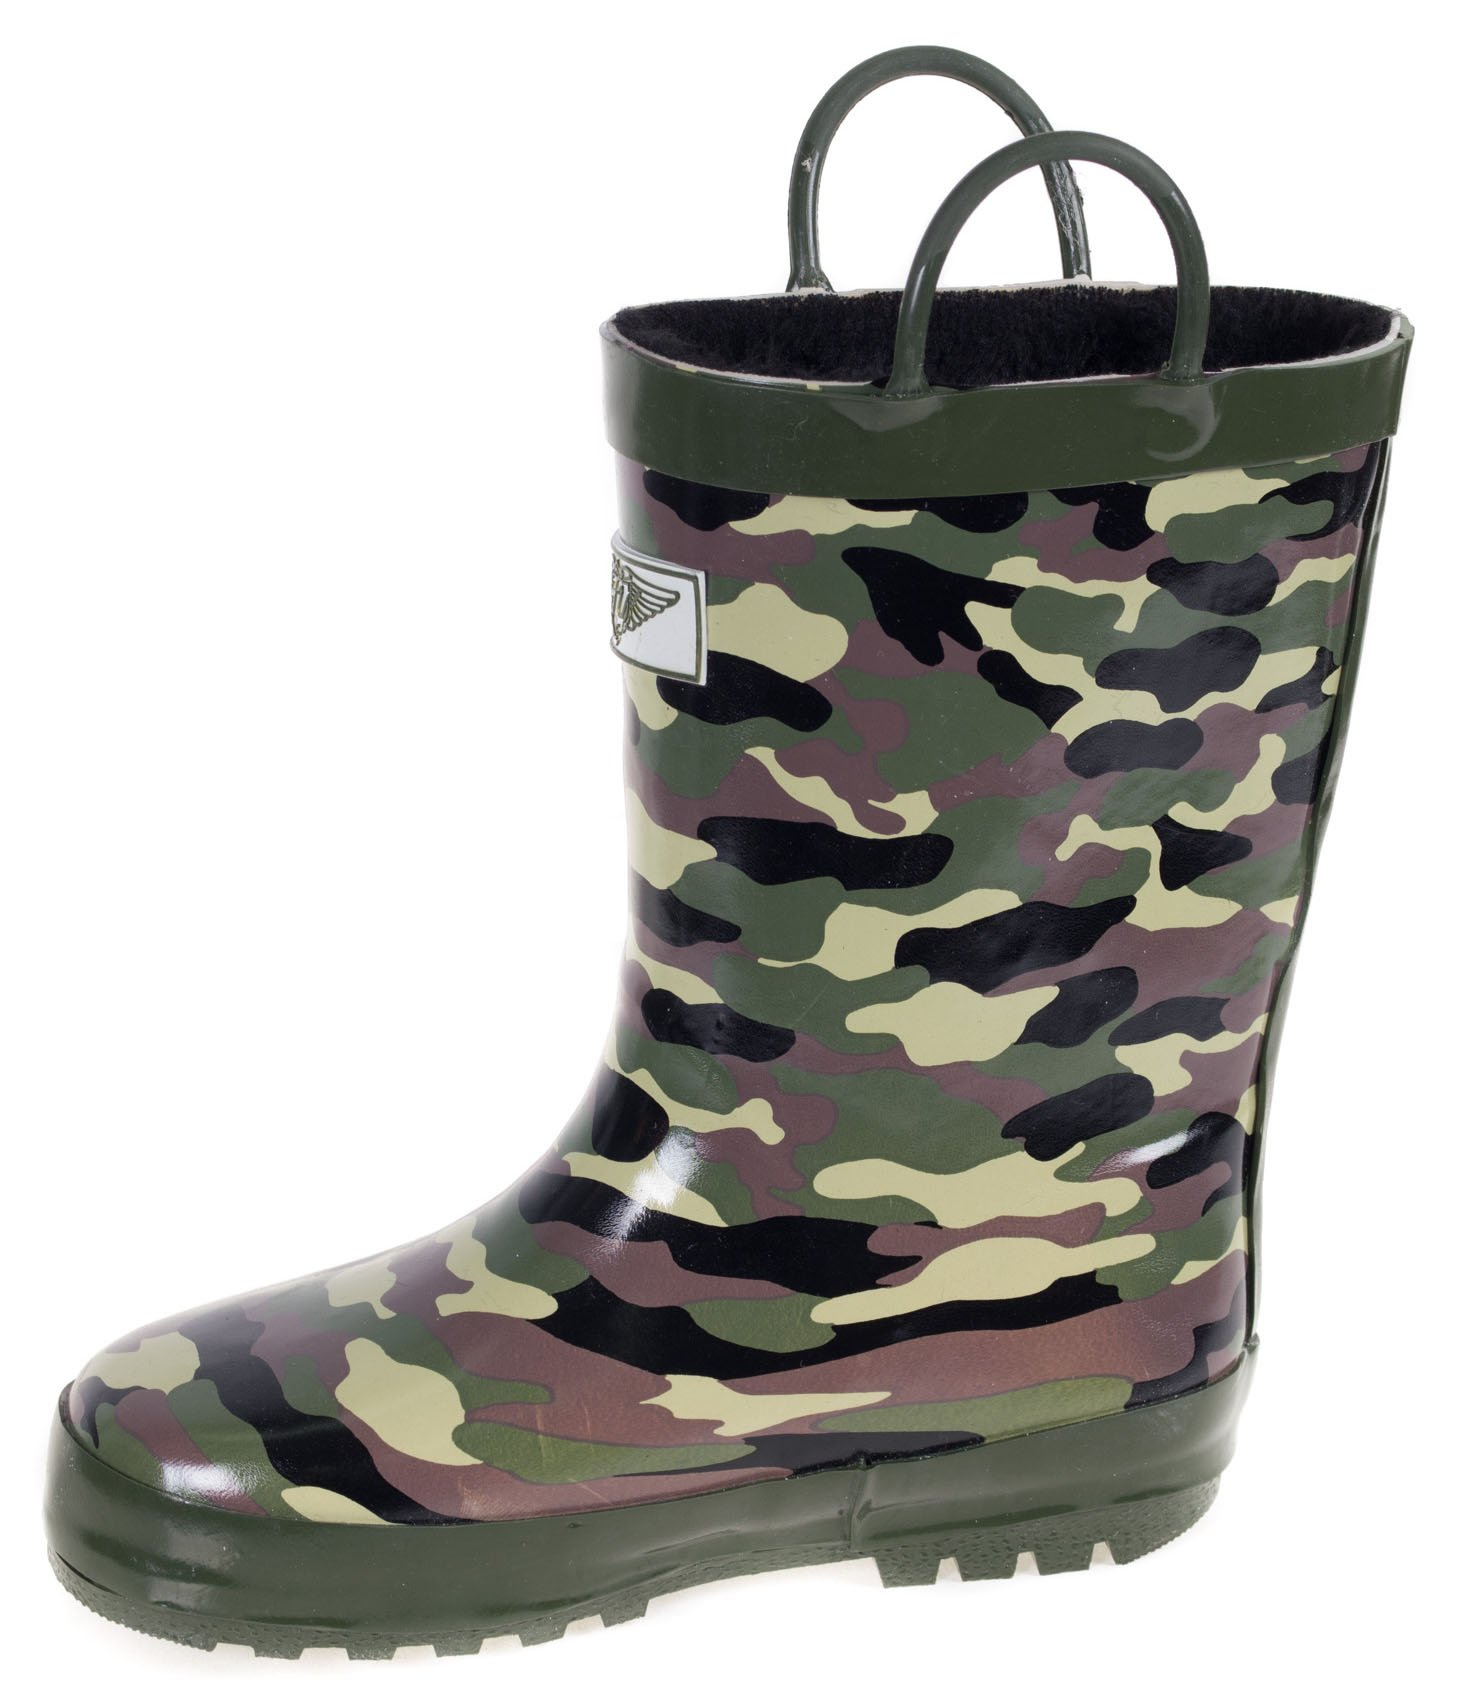 Boys Rain Rubber Boots, Best Warm Faux Fur Lined for Boys, Camo Army, Size 13 by Forever Young (Image #2)